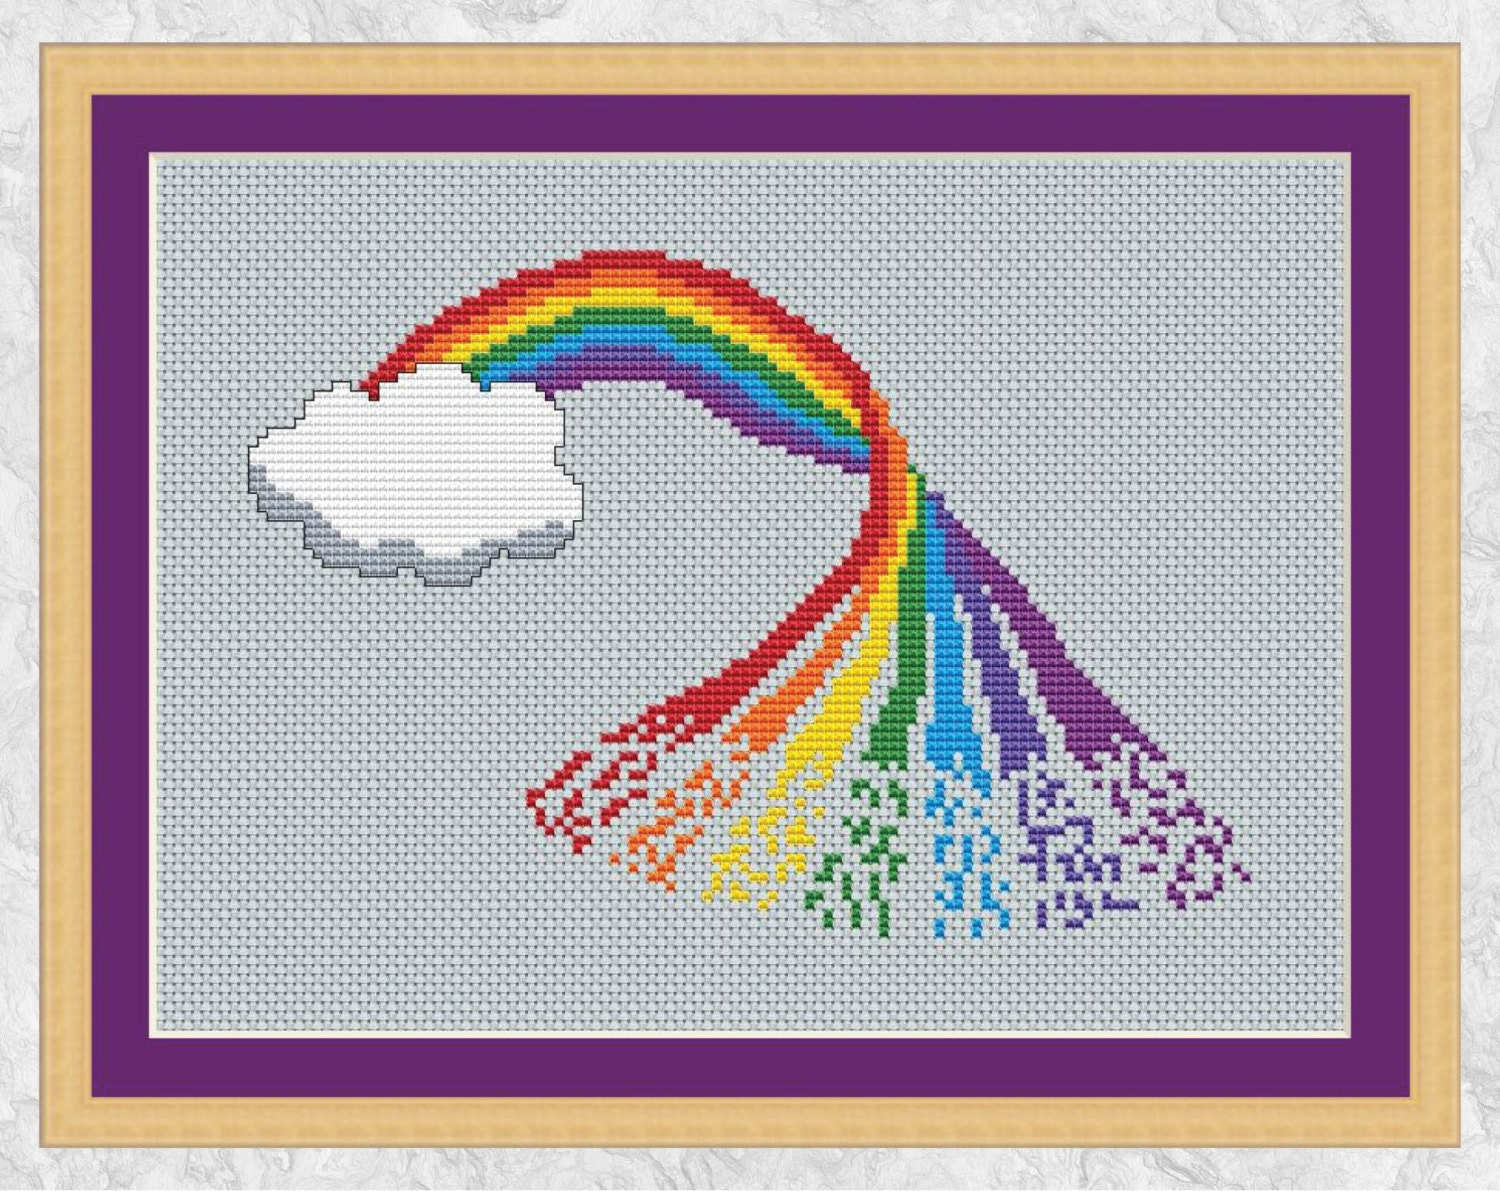 Rainbow Cross Stitch Pattern Printable, Counted Cross